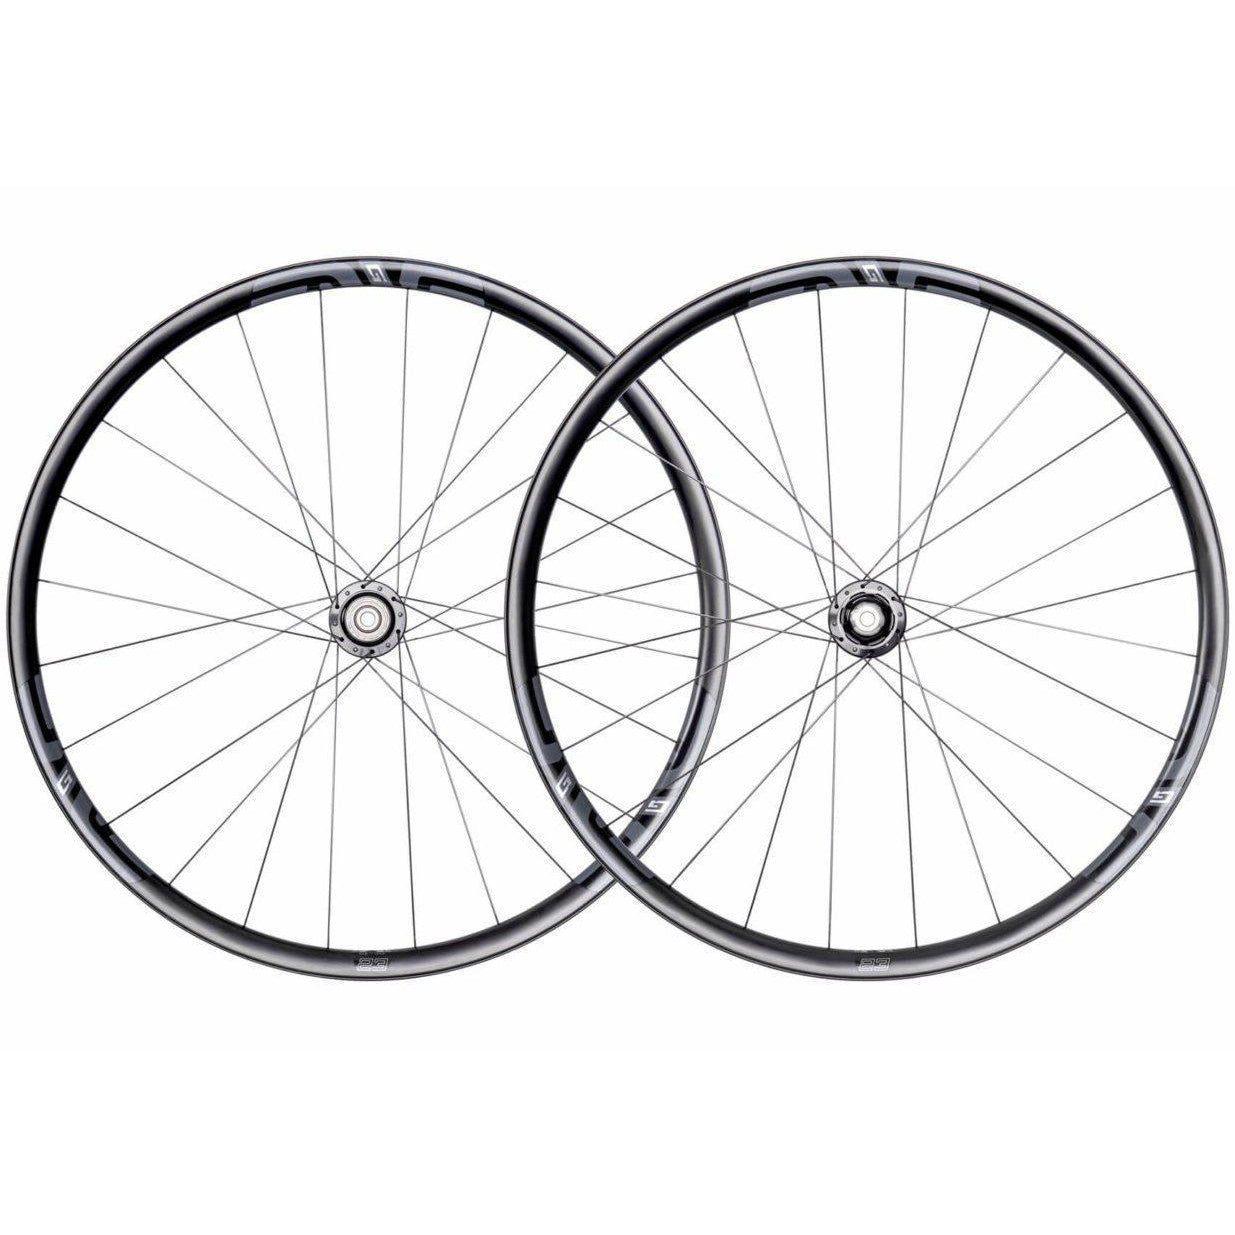 ENVE-ENVE G23 700c Gravel Wheelset-Black/R45D/12x142Thru-Shimano-EN00G231003112005-saddleback-elite-performance-cycling